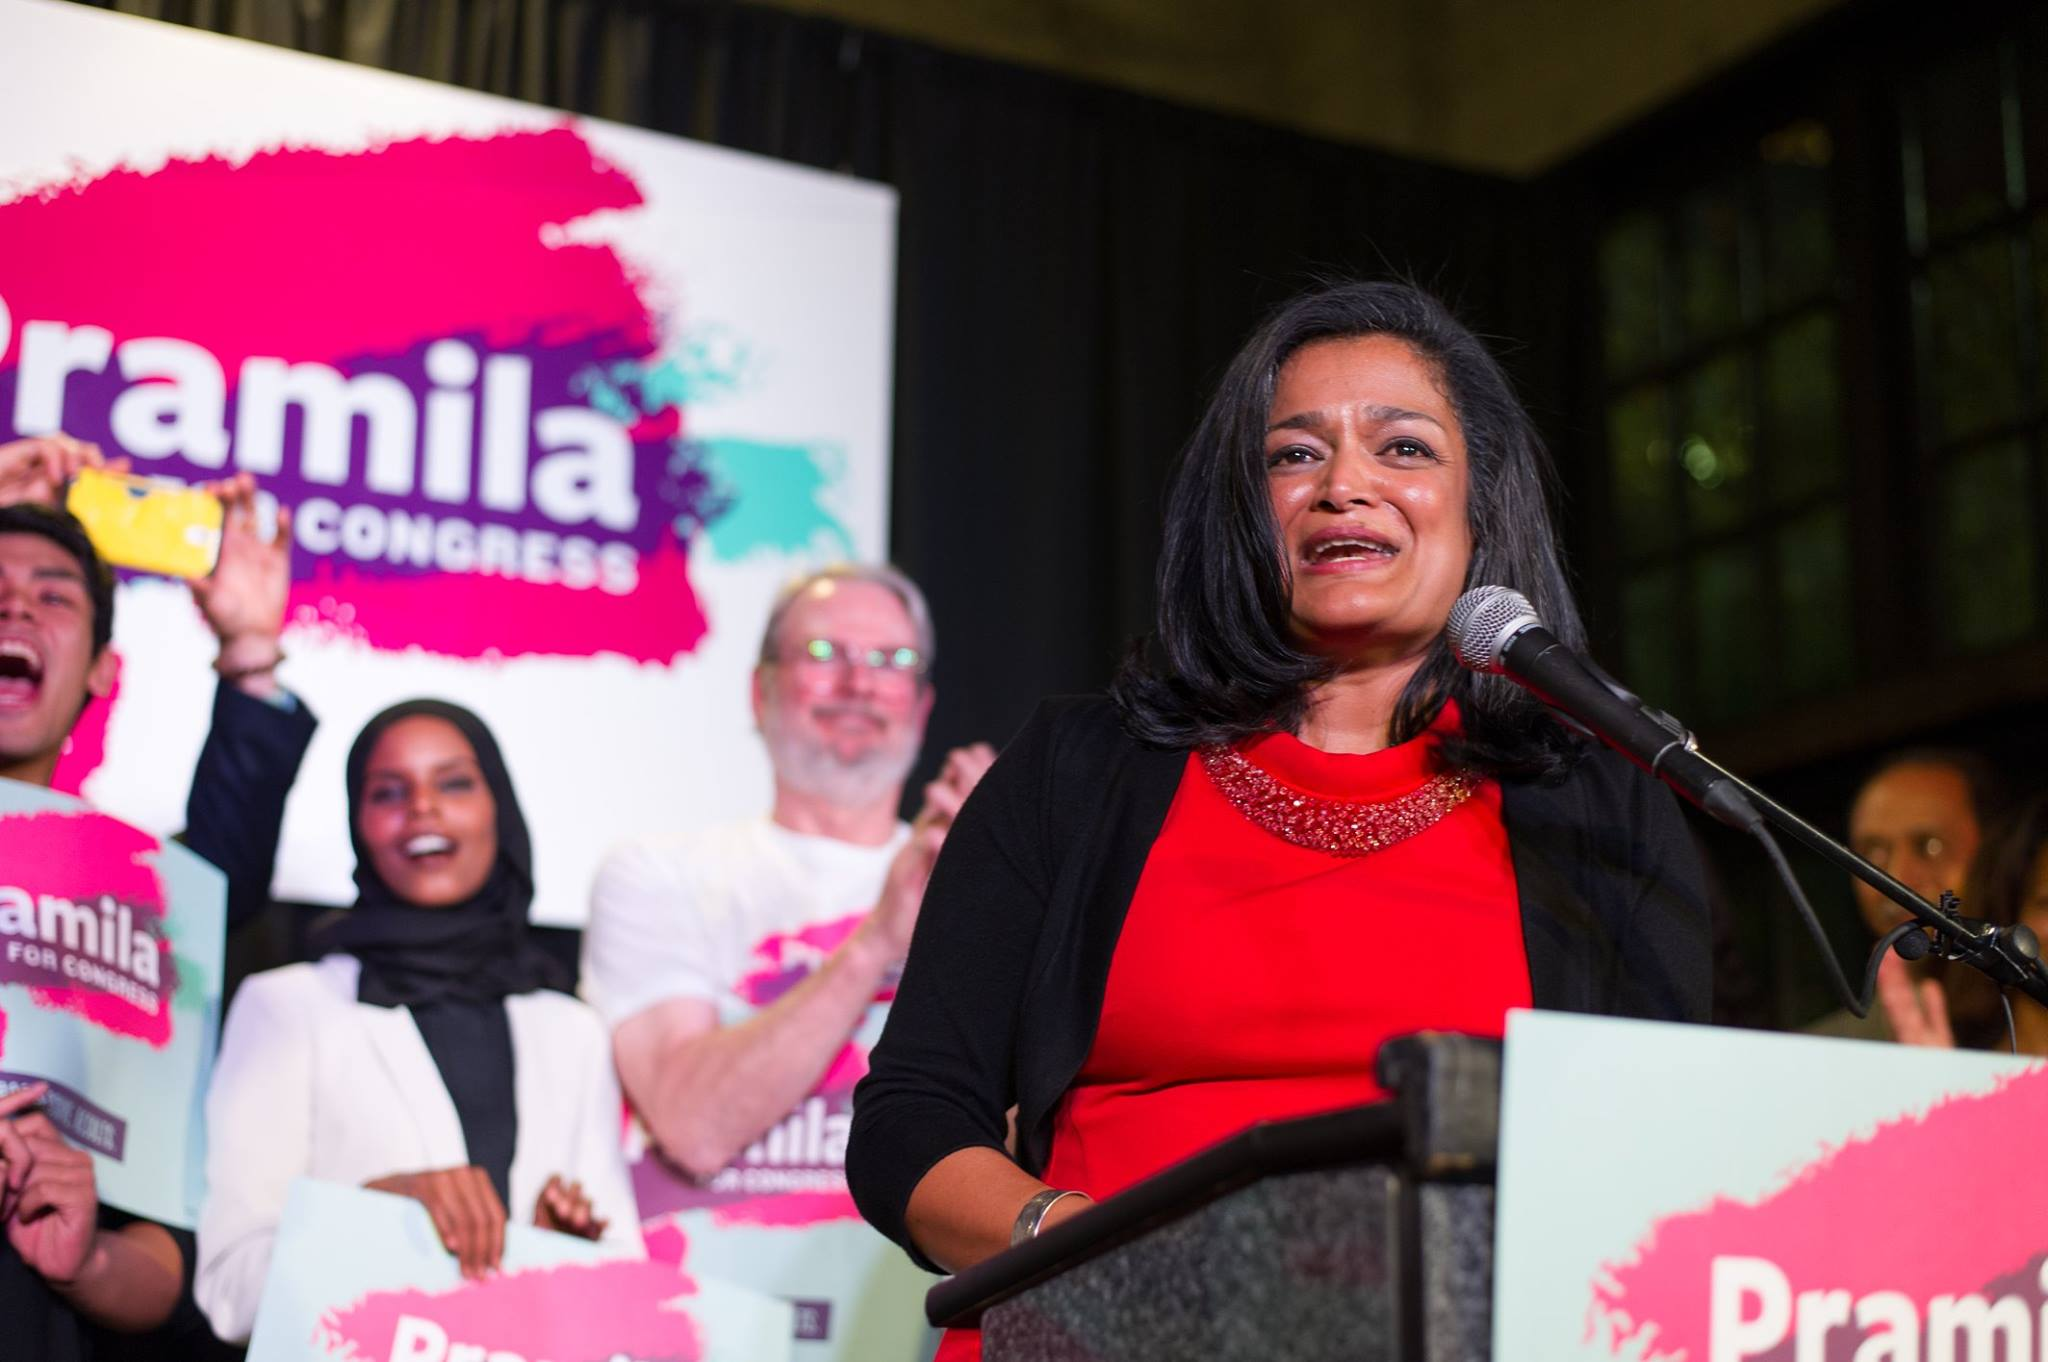 Stand with Pramila Jayapal